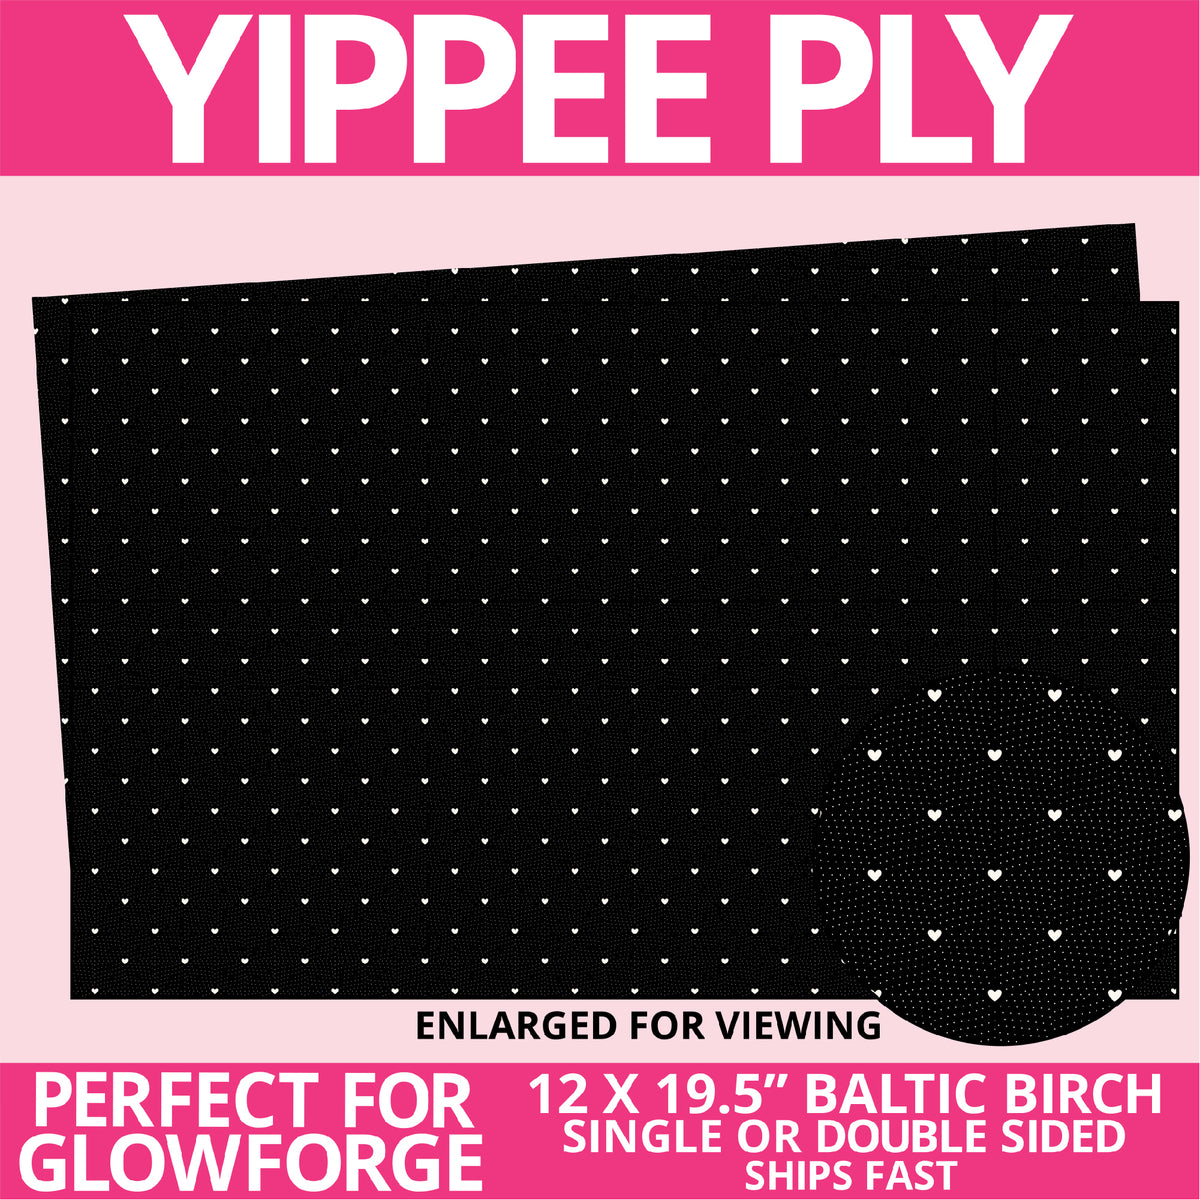 Yippee Ply Celestial Love Pattern on Birch Plywood 1021